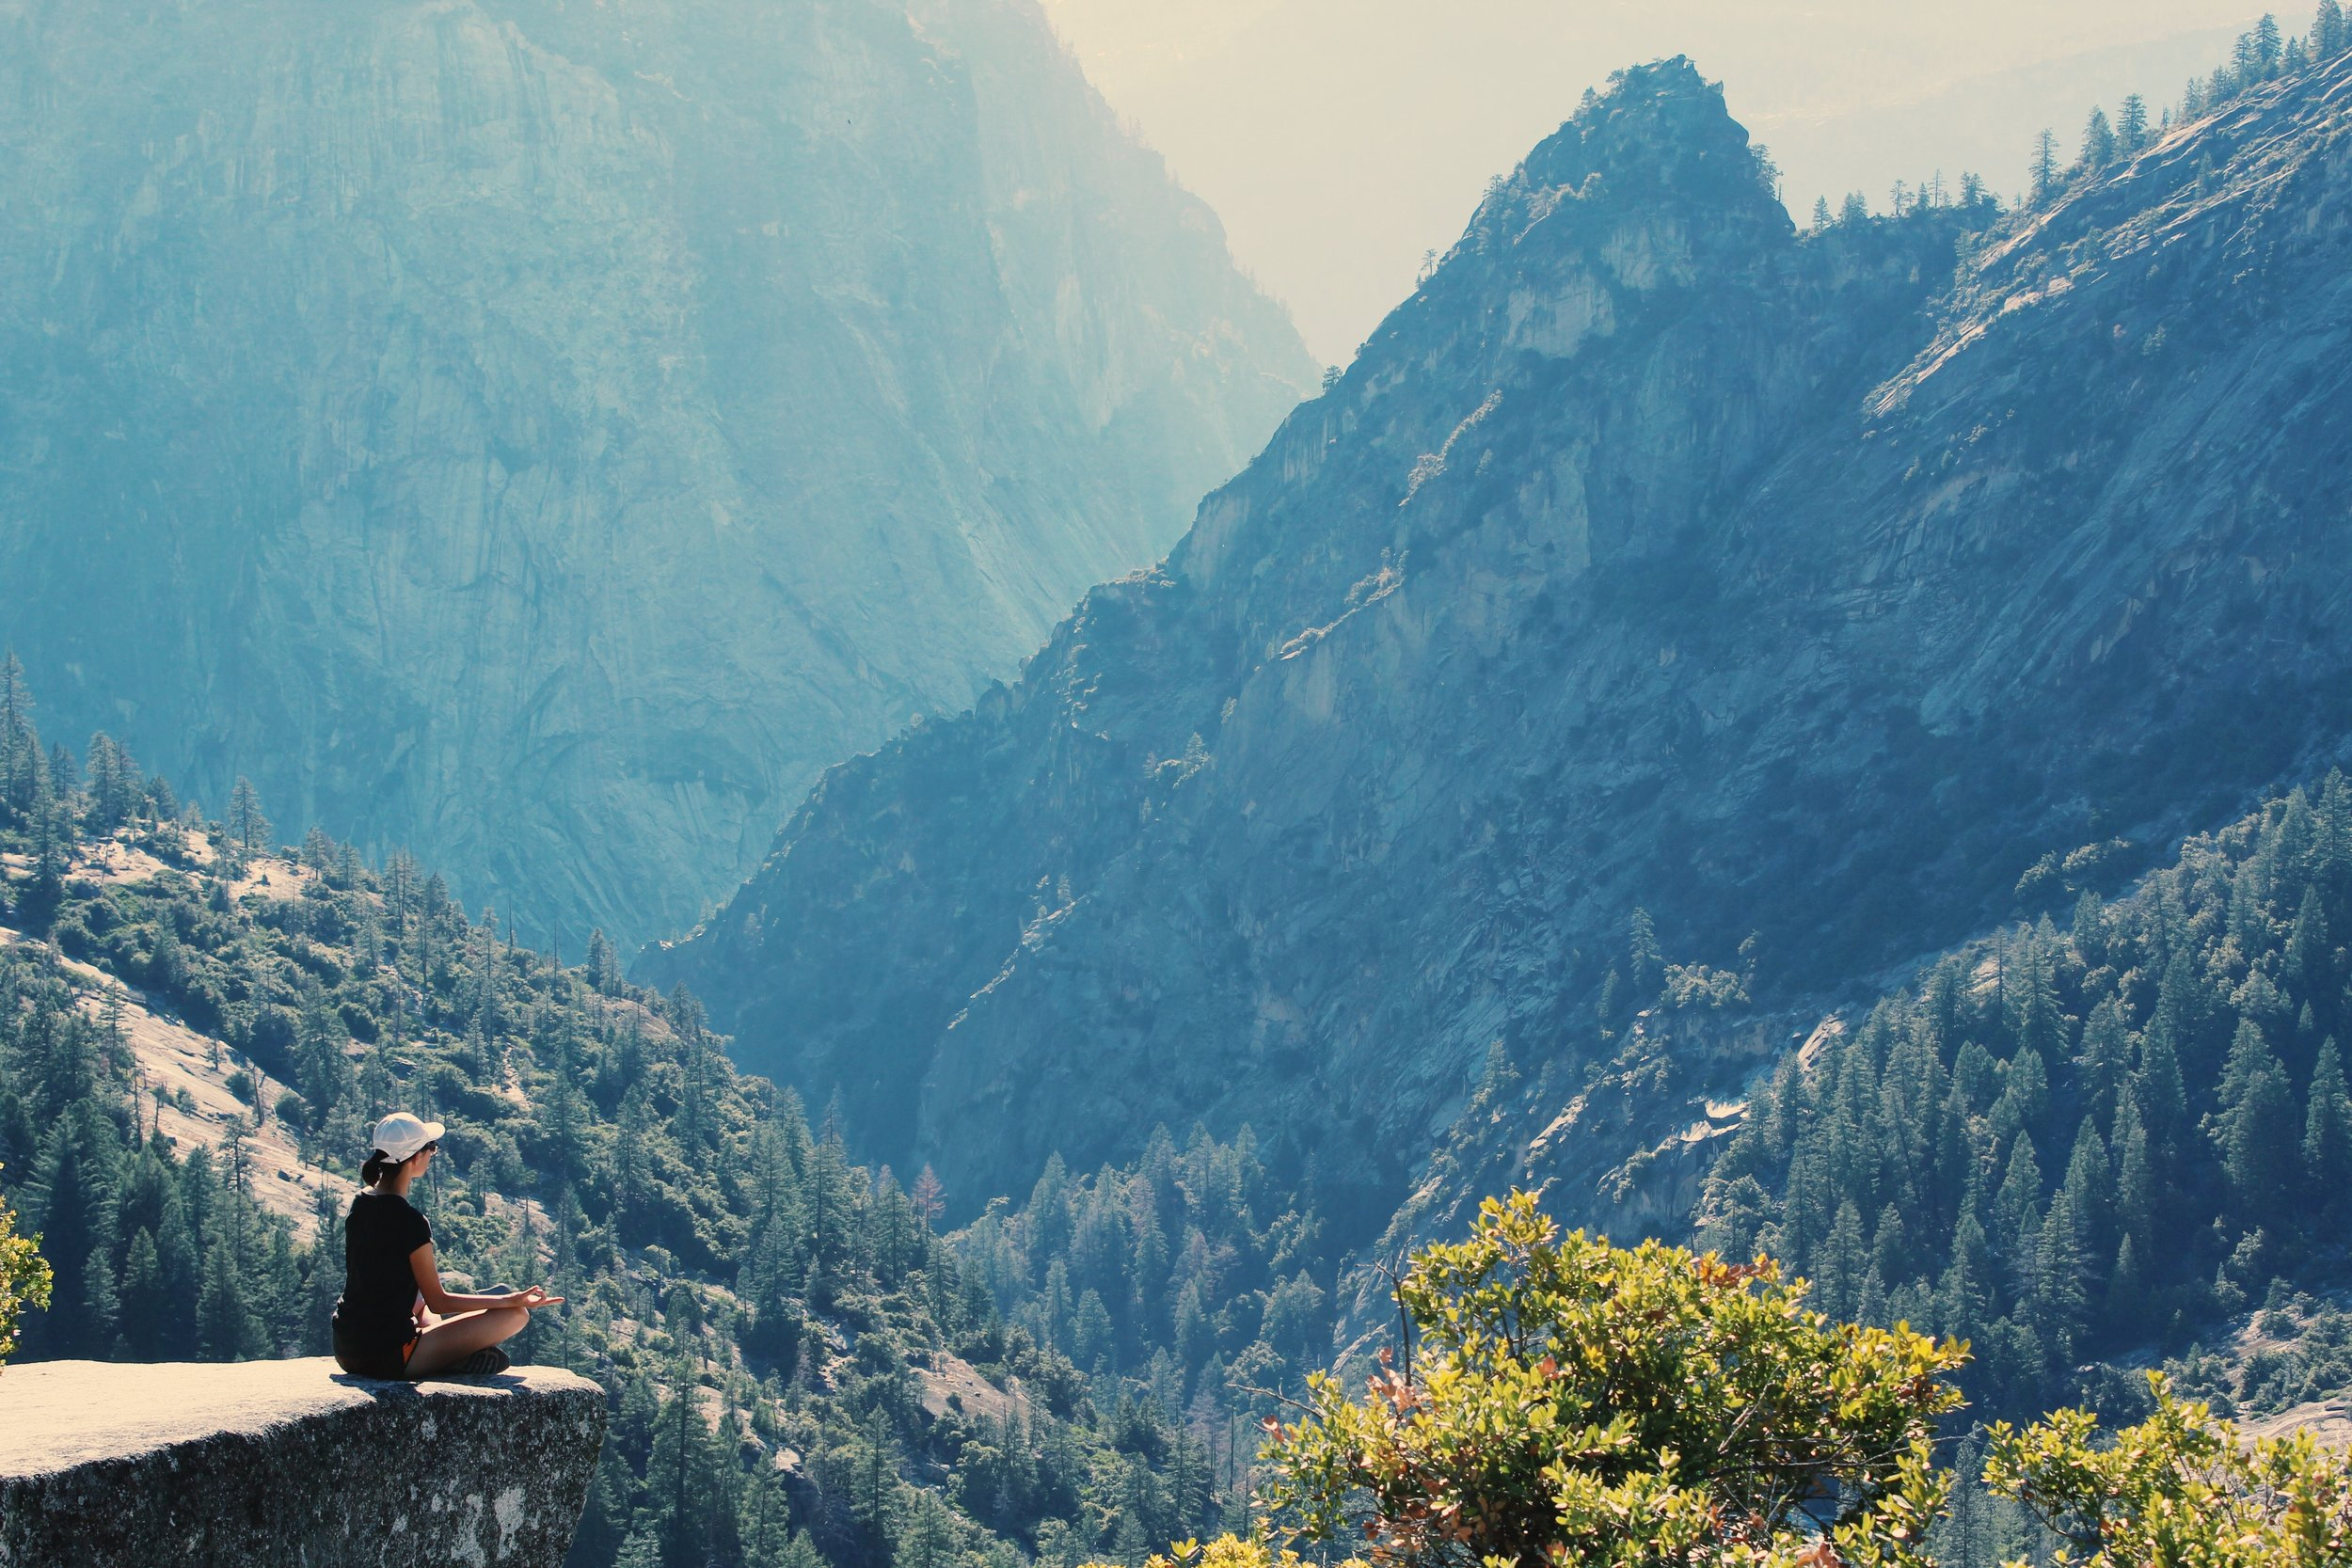 You don't need to sit amongst picturesque mountains in the lotus position to achieve mindfulness, according to Padraig O'Morain